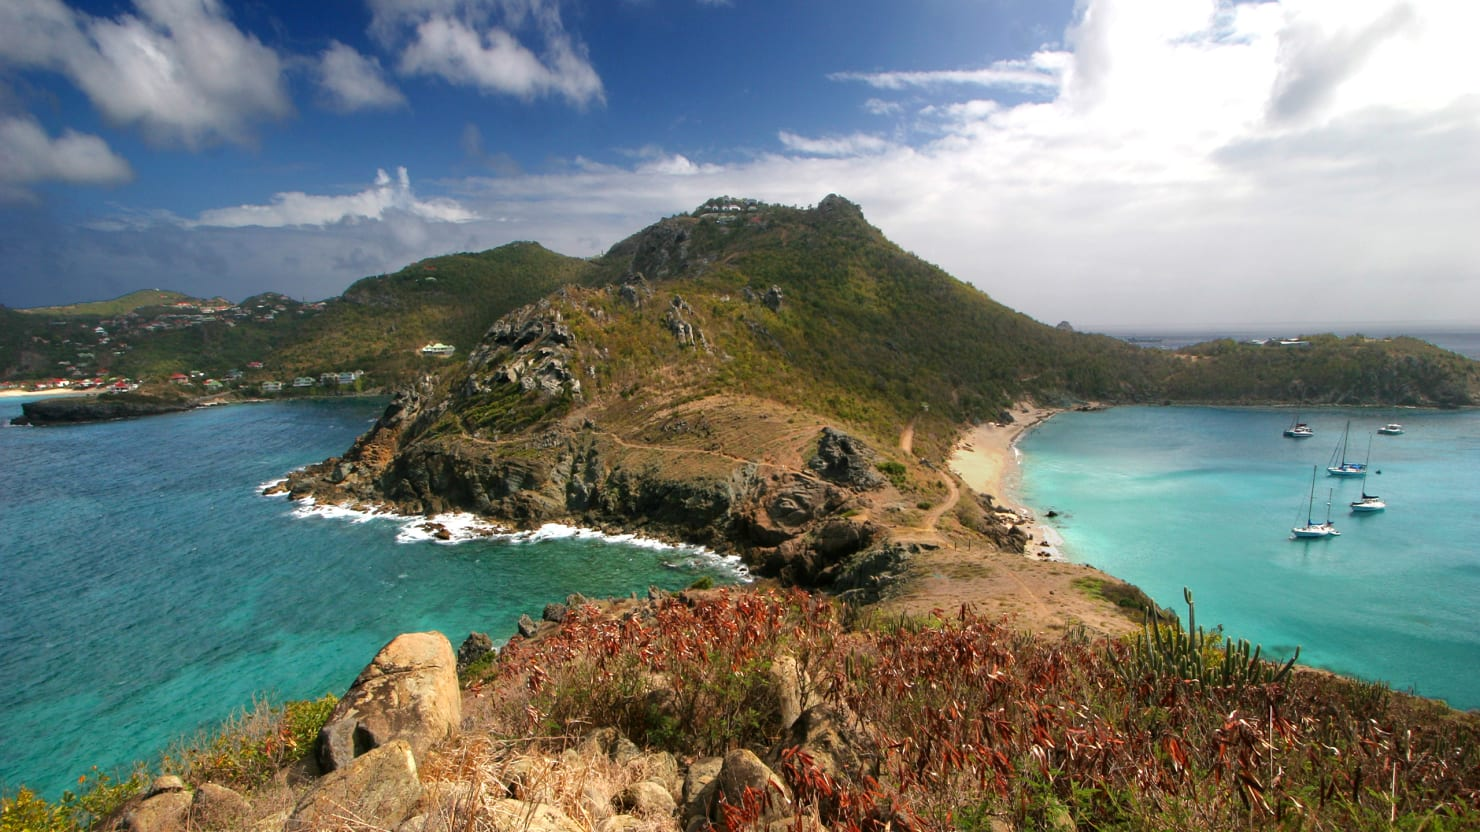 Exploring the Beaches of St. Barts (Photos)